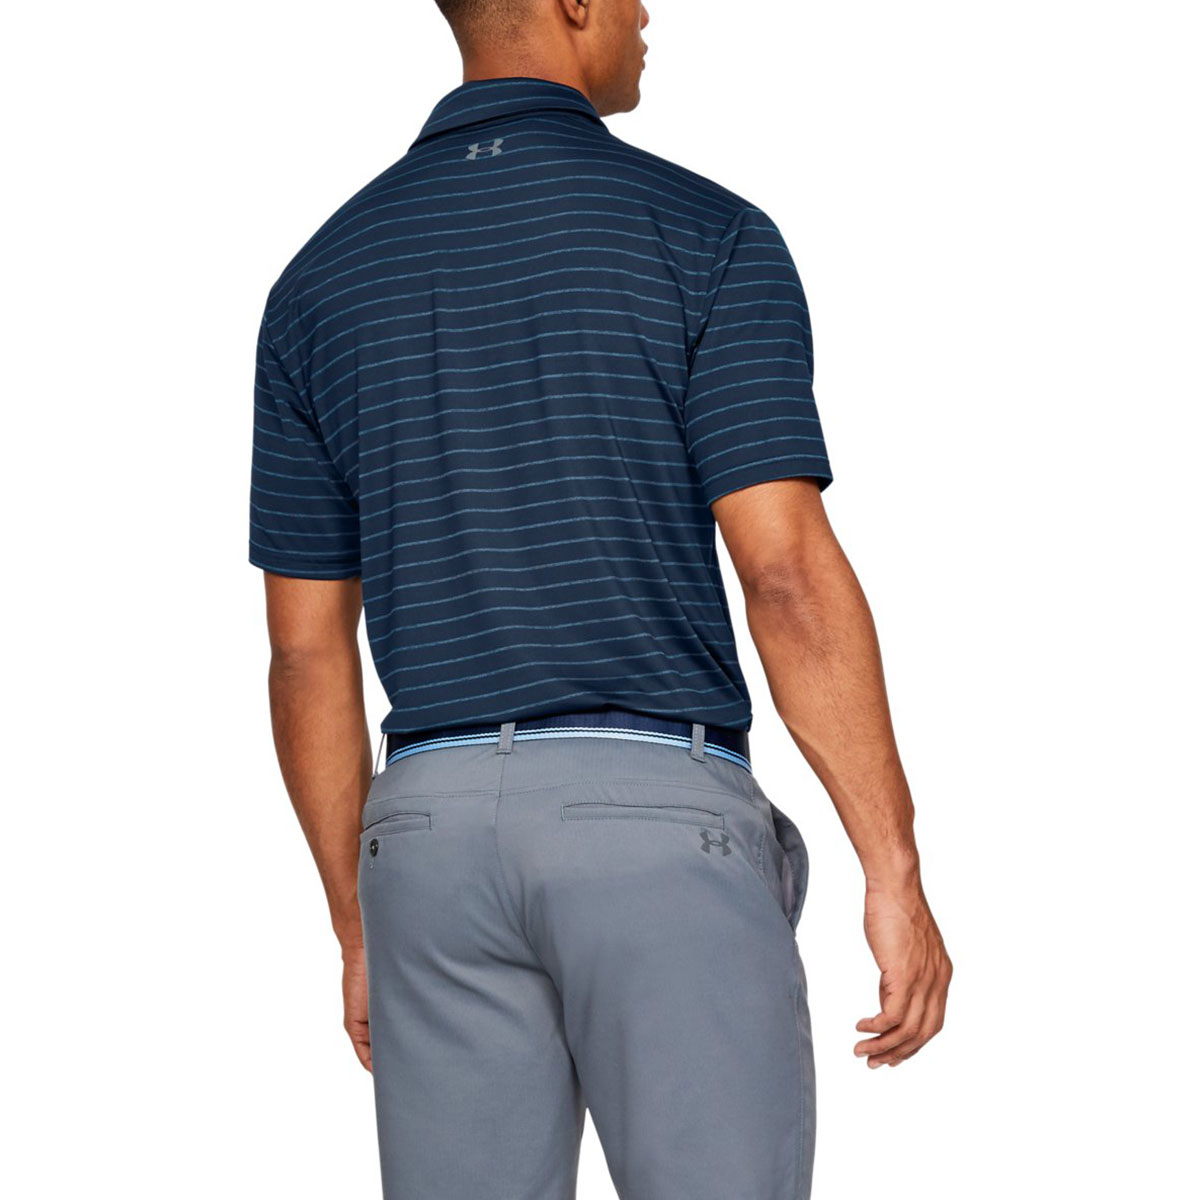 Under-Armour-Mens-2019-Playoff-Polo-2-0-Breathable-Light-Stretch-Polo-Shirt thumbnail 3